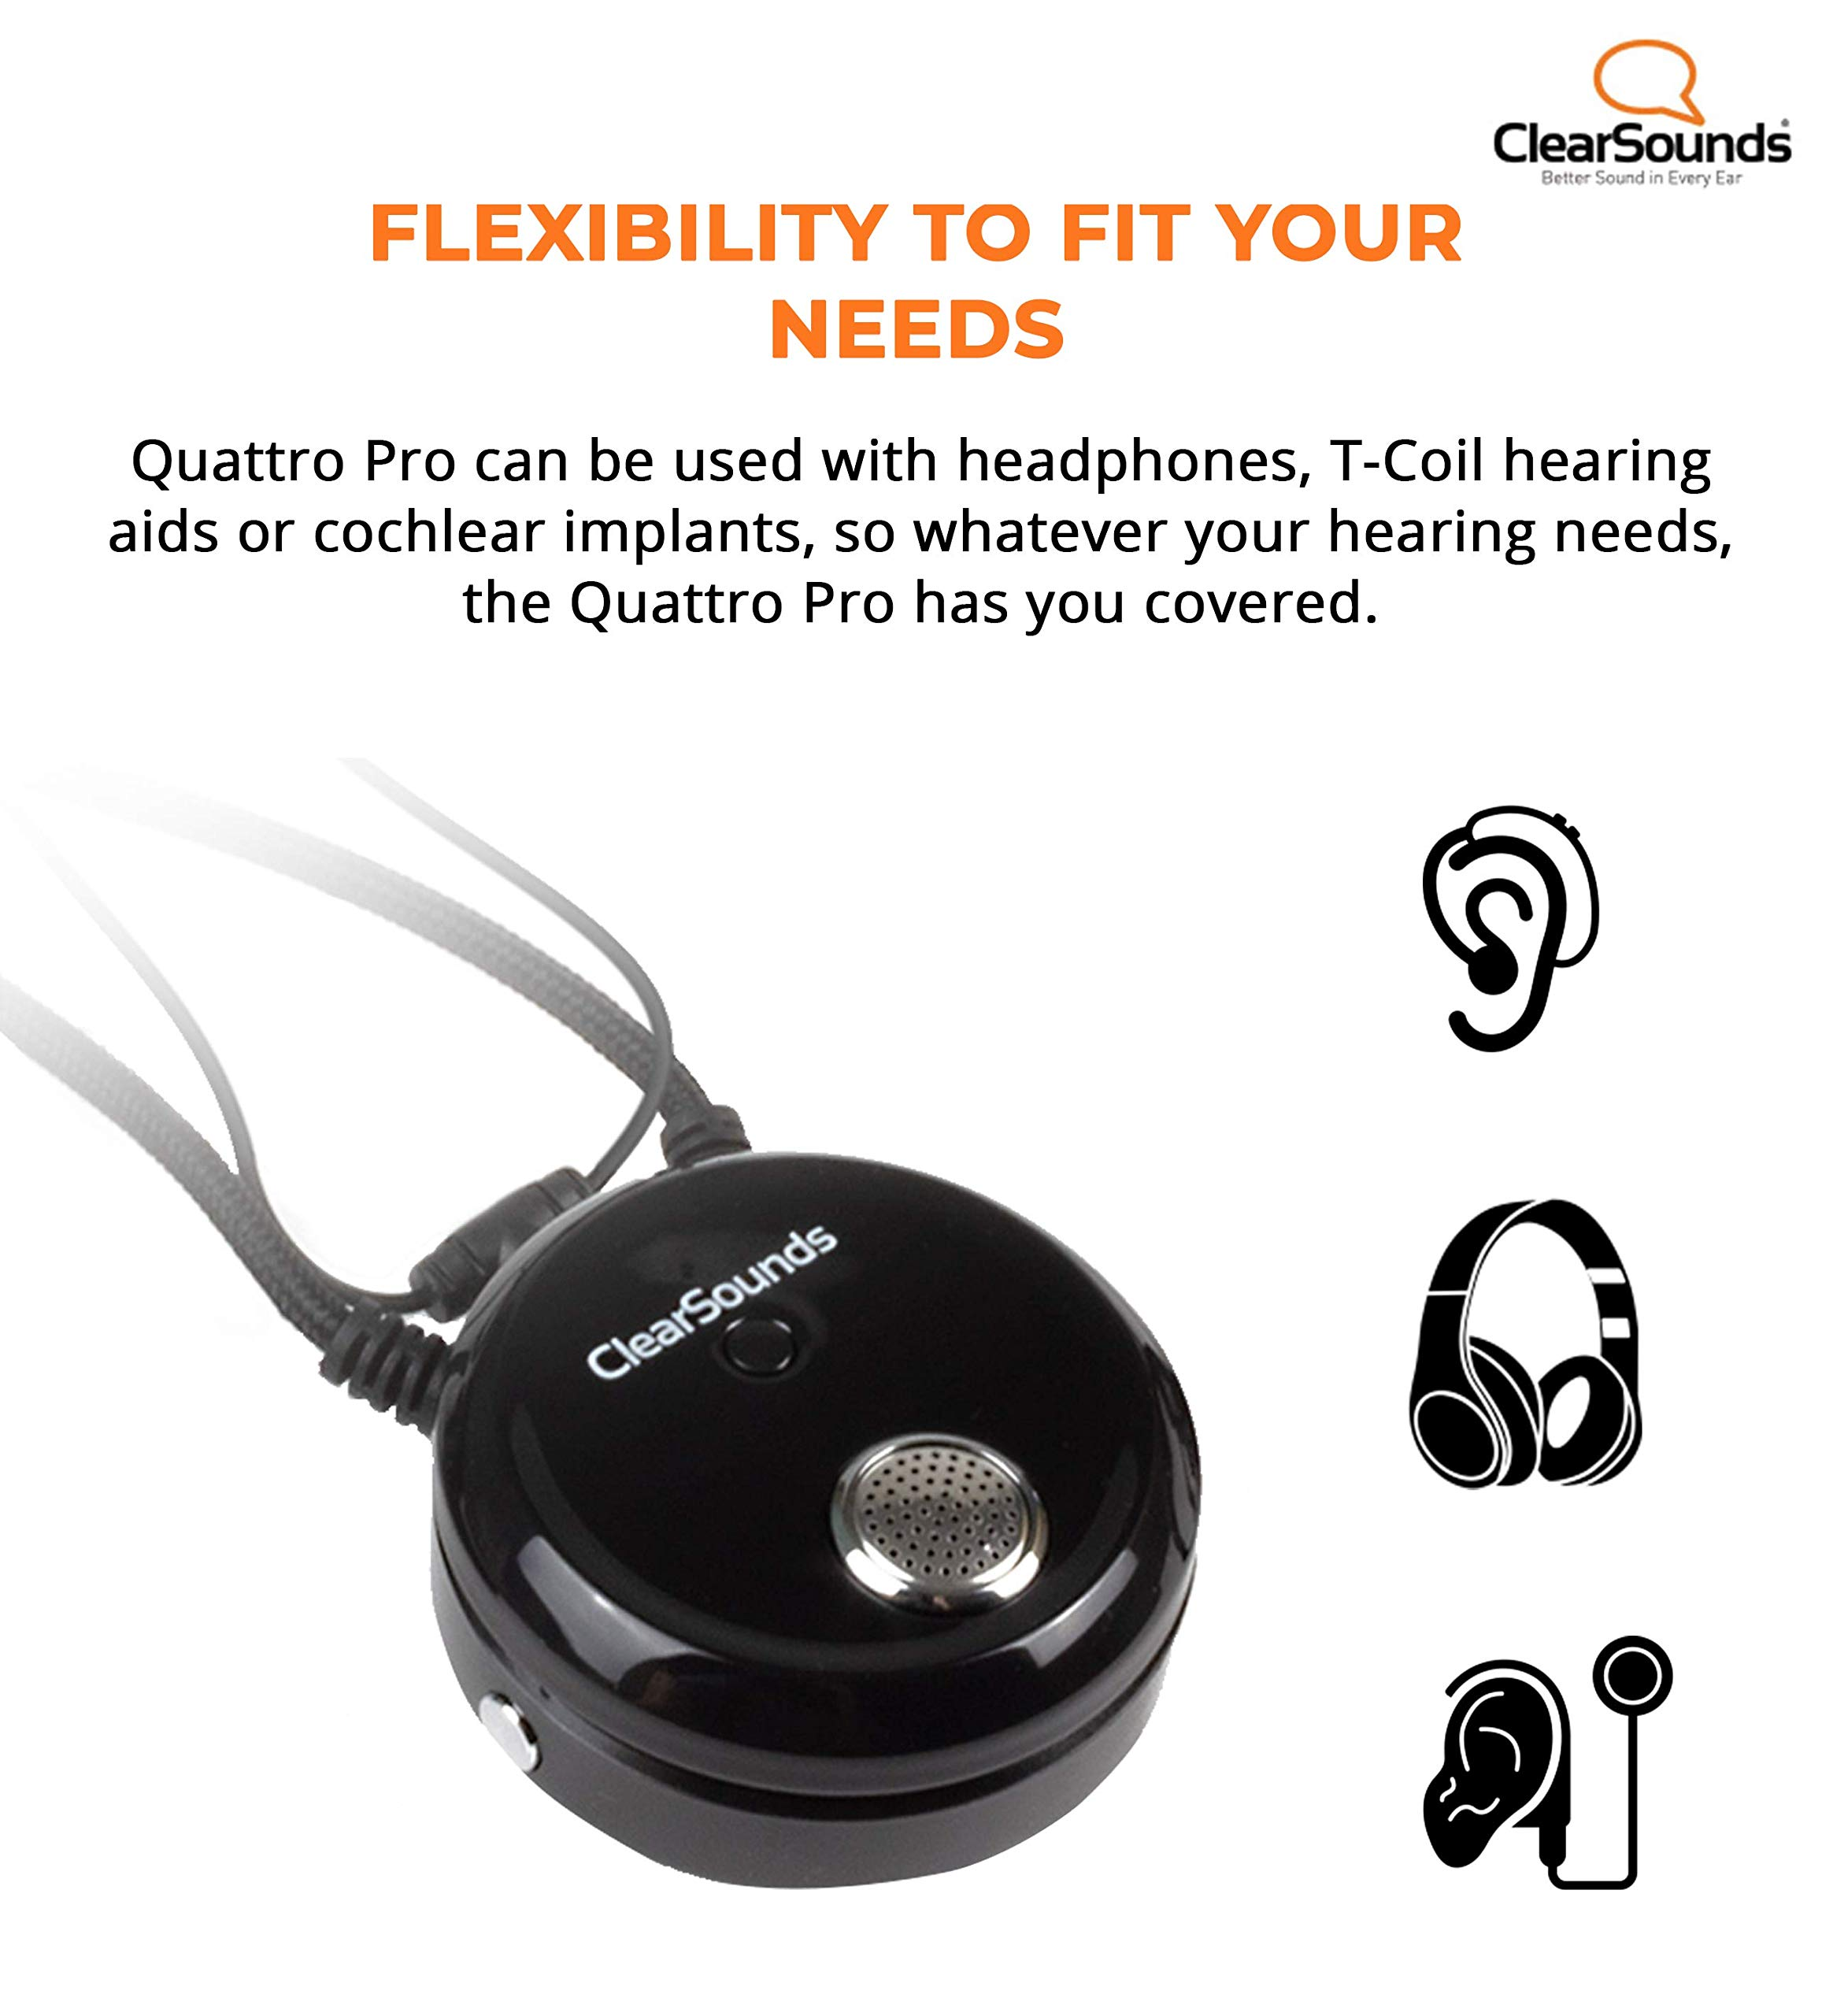 ClearSounds CSQTPRO Quattro Pro Portable Assistive Listening System - Bluetooth Neckloop and Removable Omni-Directional Microphone - T-Coil Hearing Aid Compatible by ClearSounds (Image #7)